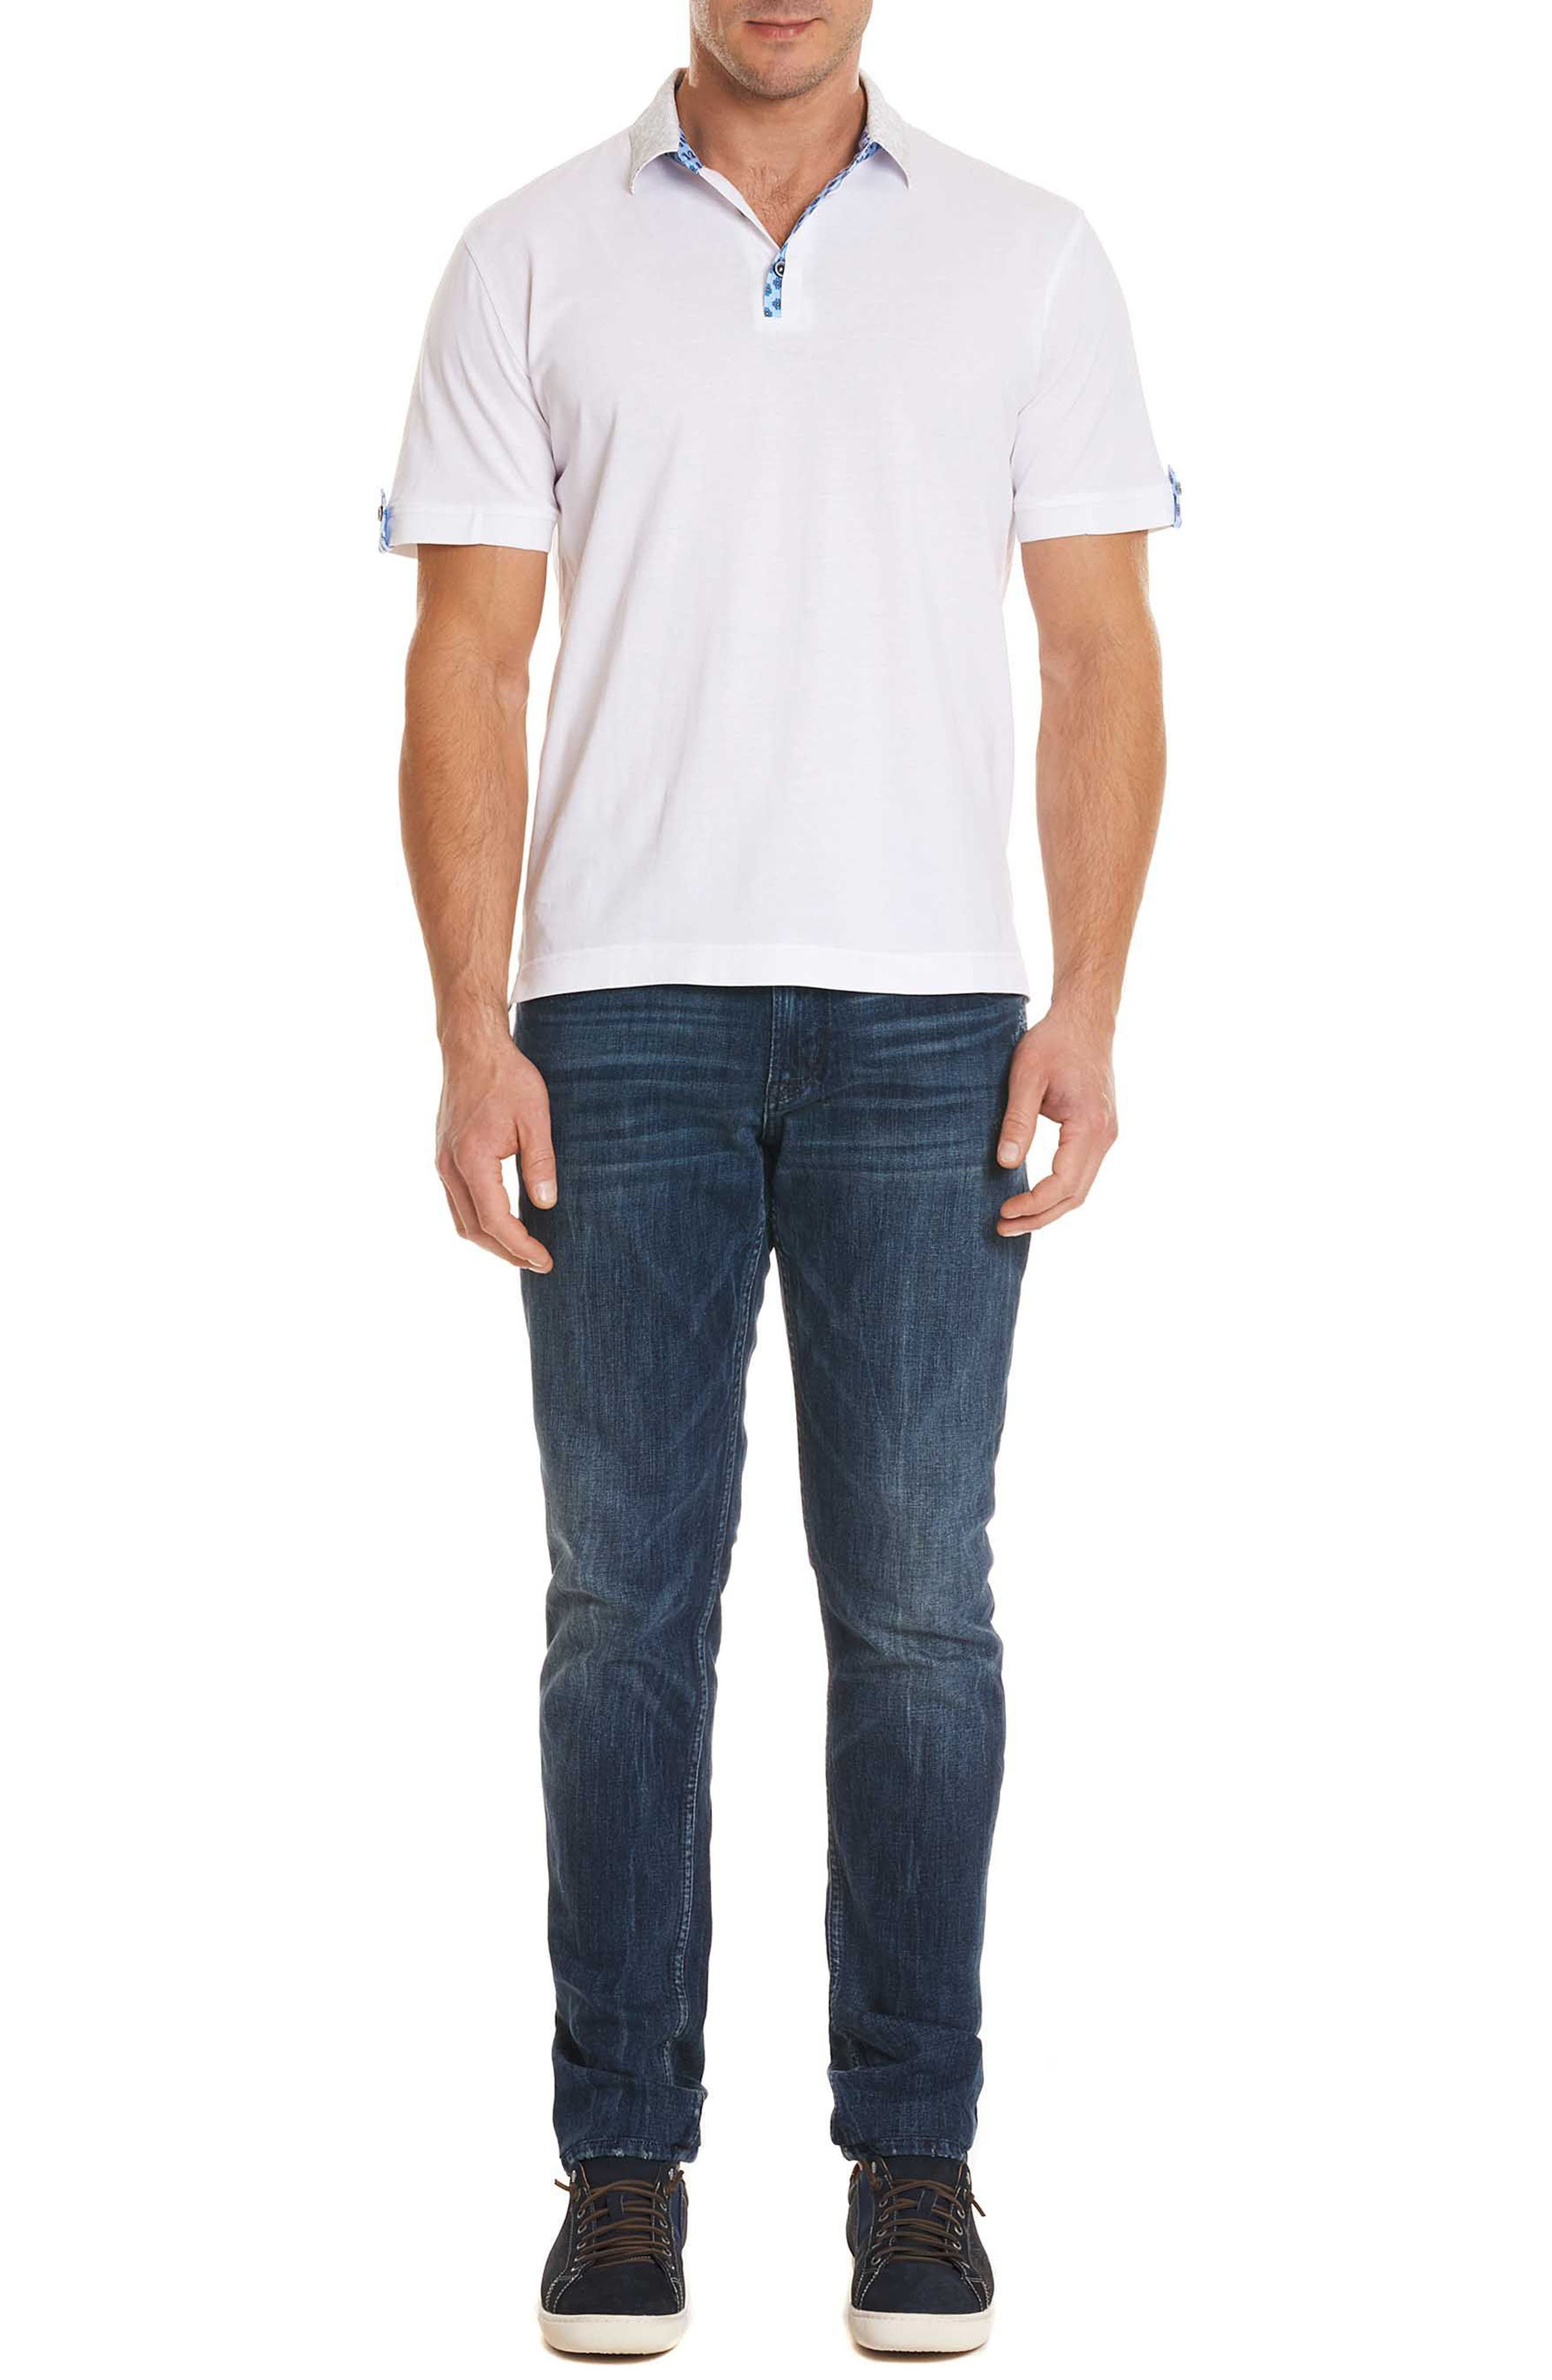 Diego Classic Fit Polo,                             Alternate thumbnail 6, color,                             WHITE